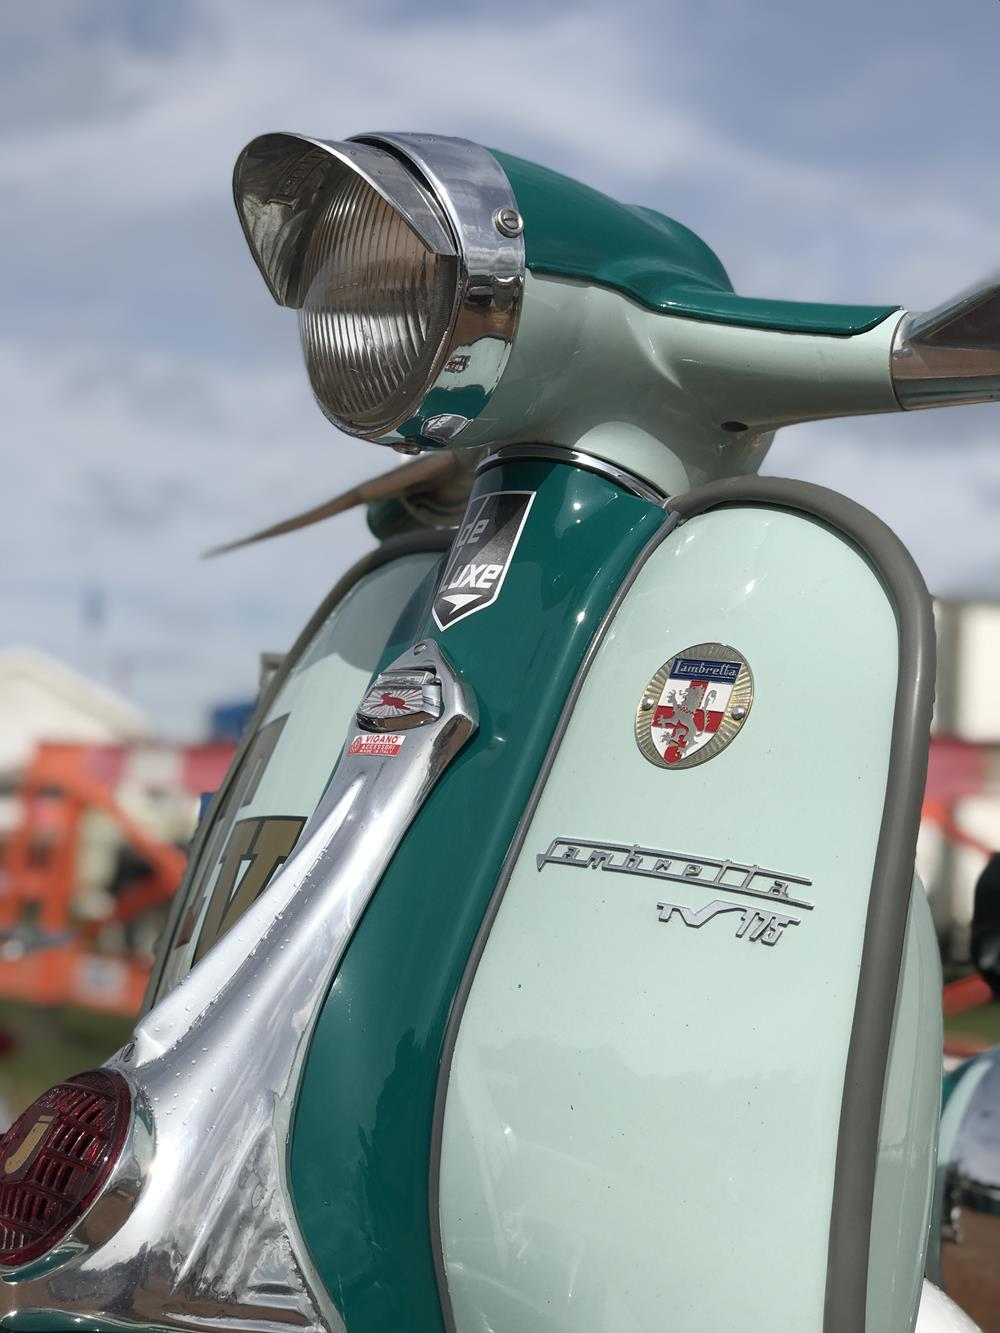 Two tone green Lambretta